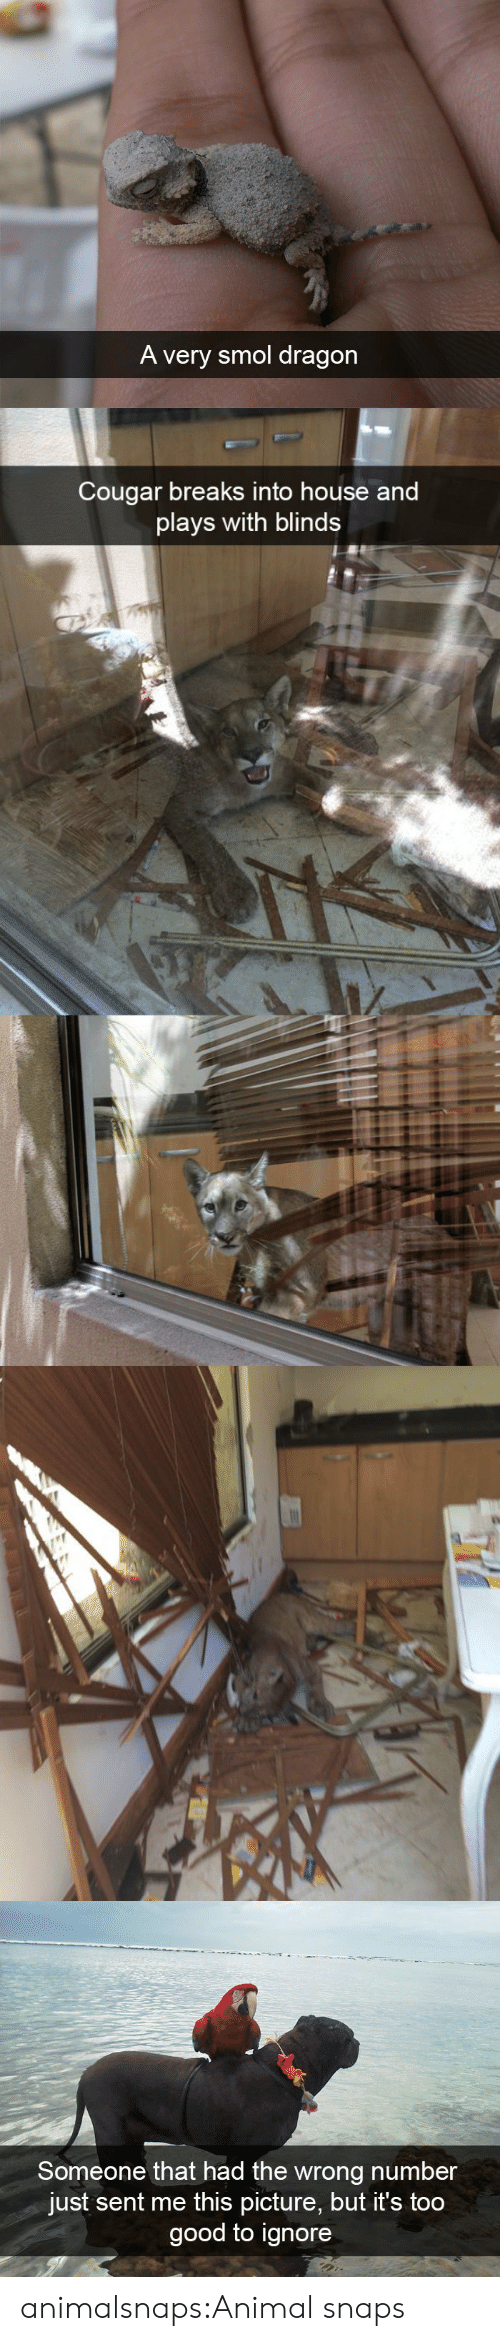 Target, Tumblr, and Animal: A very smol dragon   Cougar breaks into house and  plays with blinds   Someone that had the wrong number  just sent me this picture, but it's too  good to ignore animalsnaps:Animal snaps